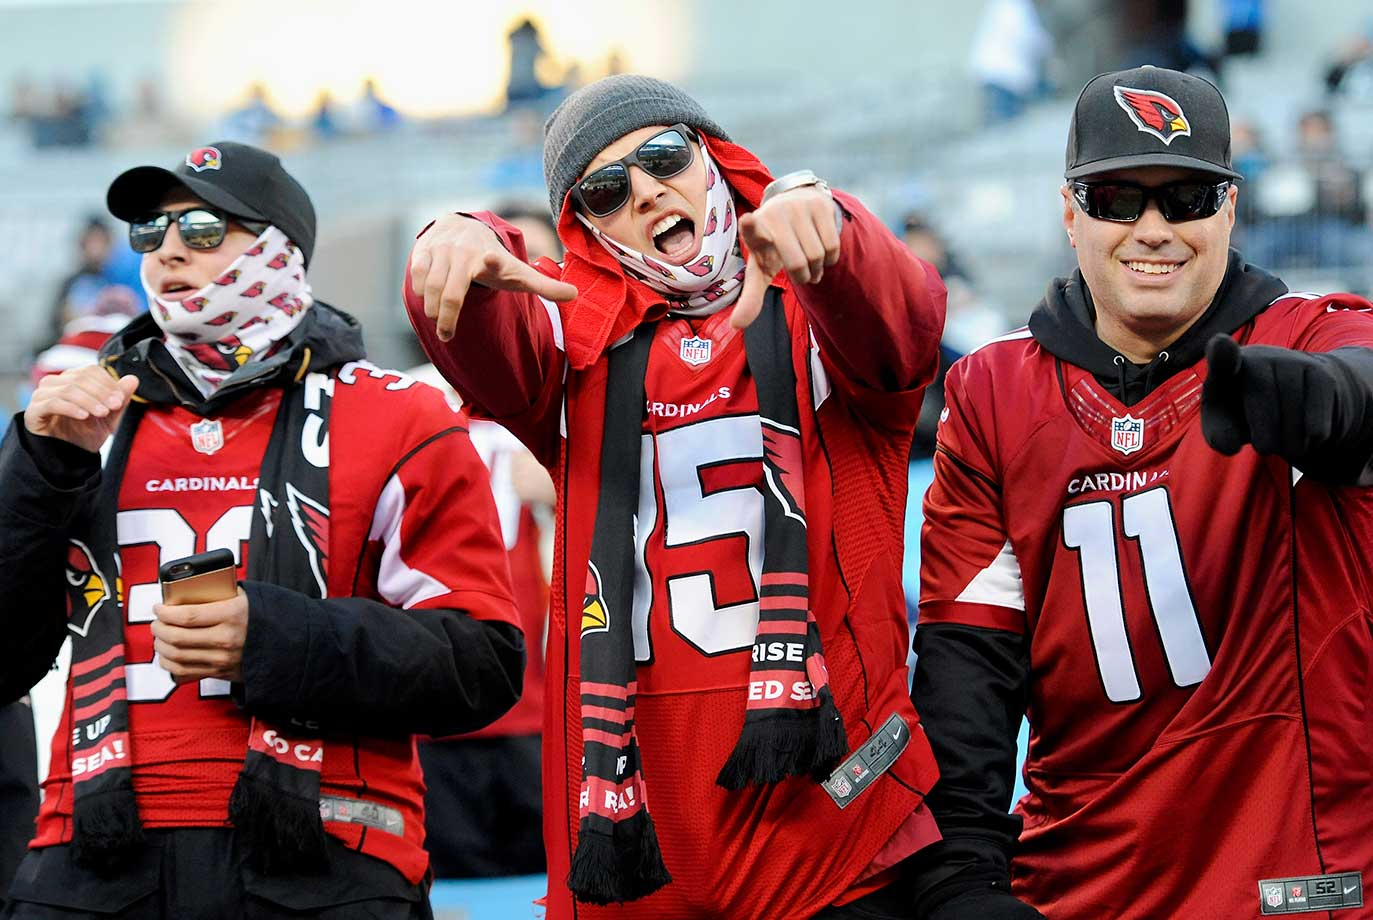 Arizona Cardinals fans gesture prior to the NFC Championship Game.